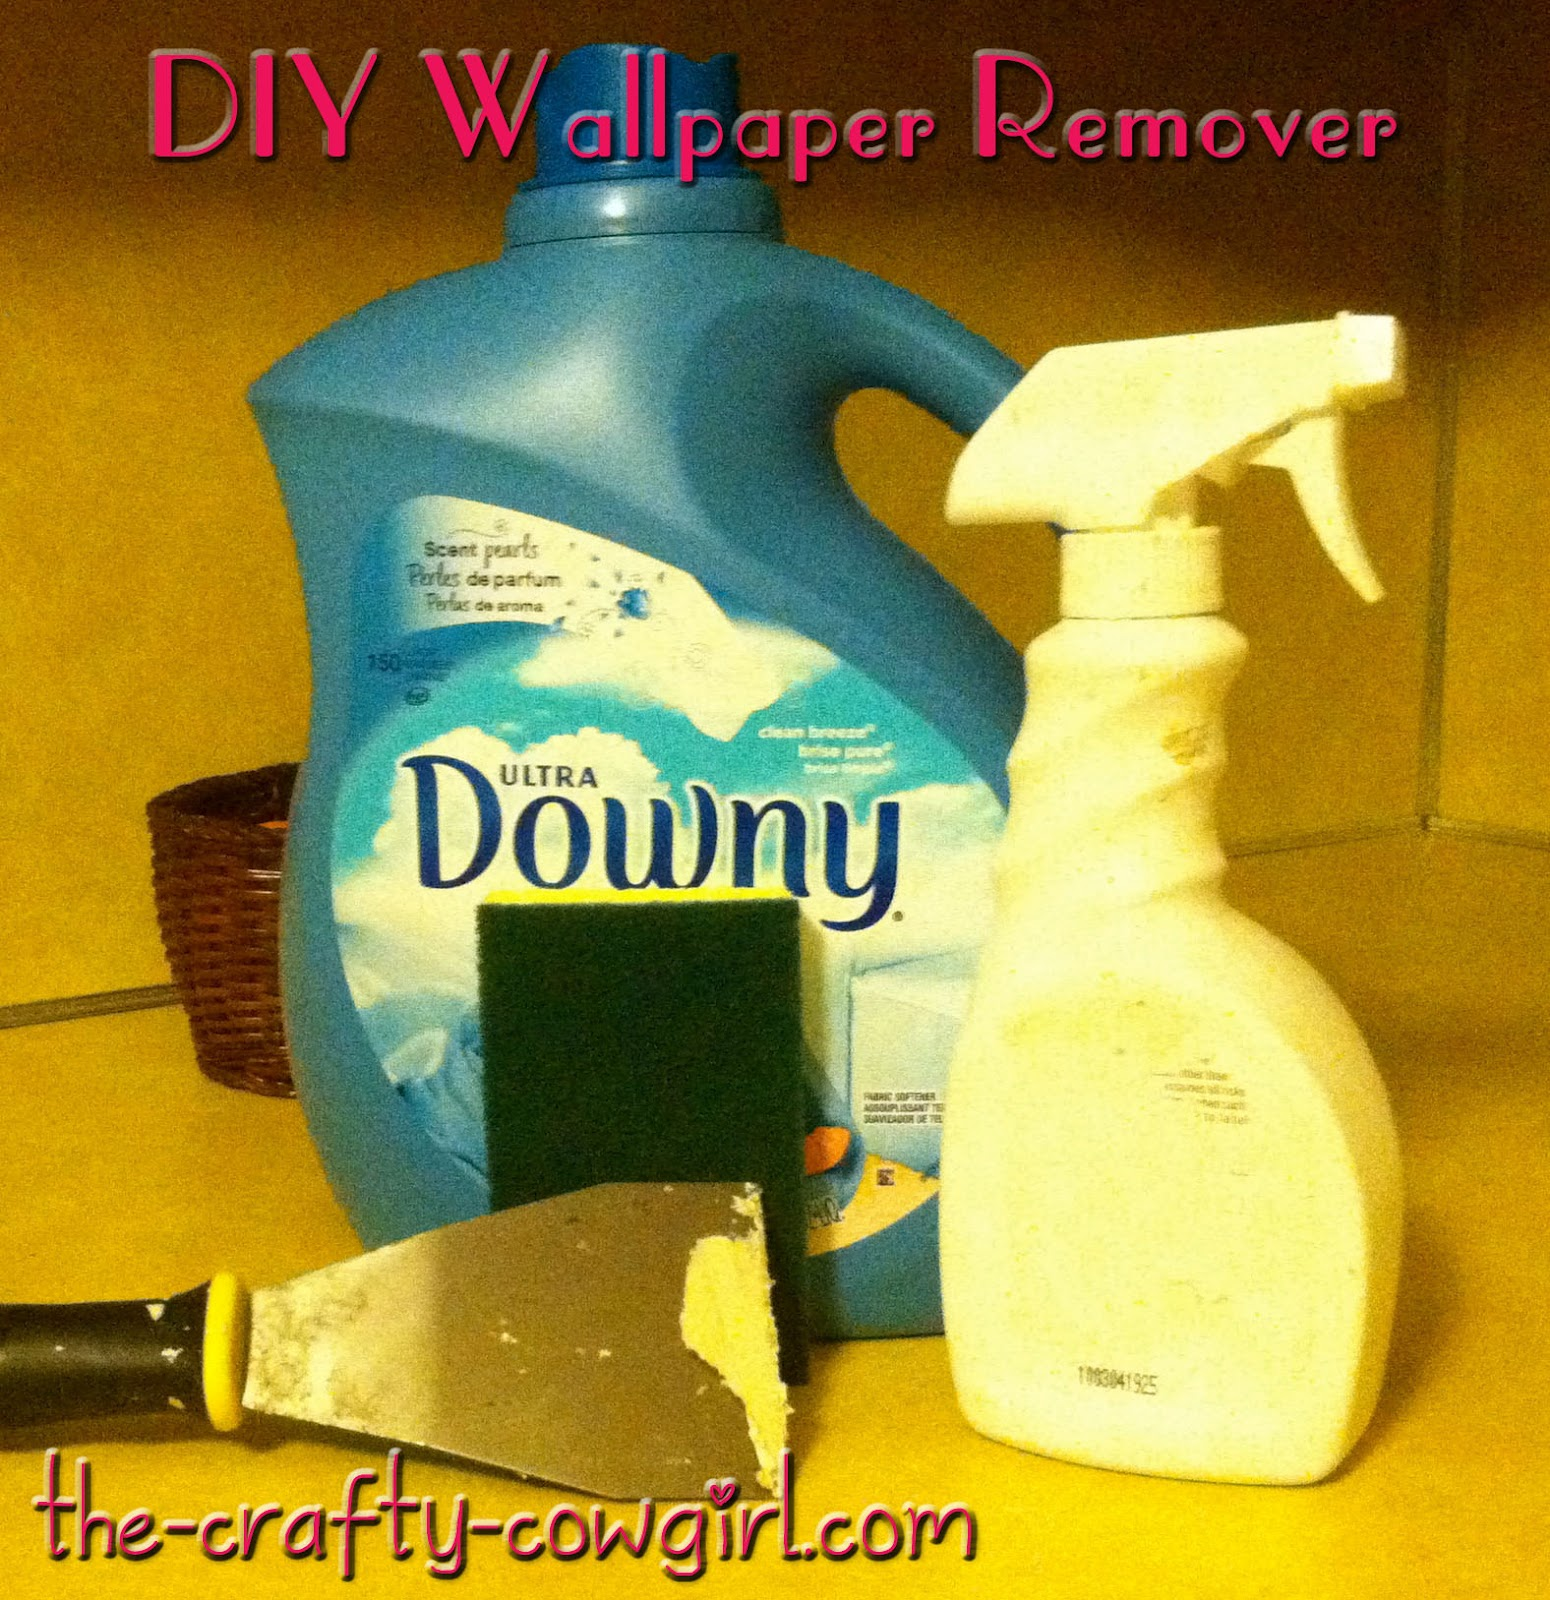 download Wallpaper Remover [1550x1600] for your Desktop 1550x1600